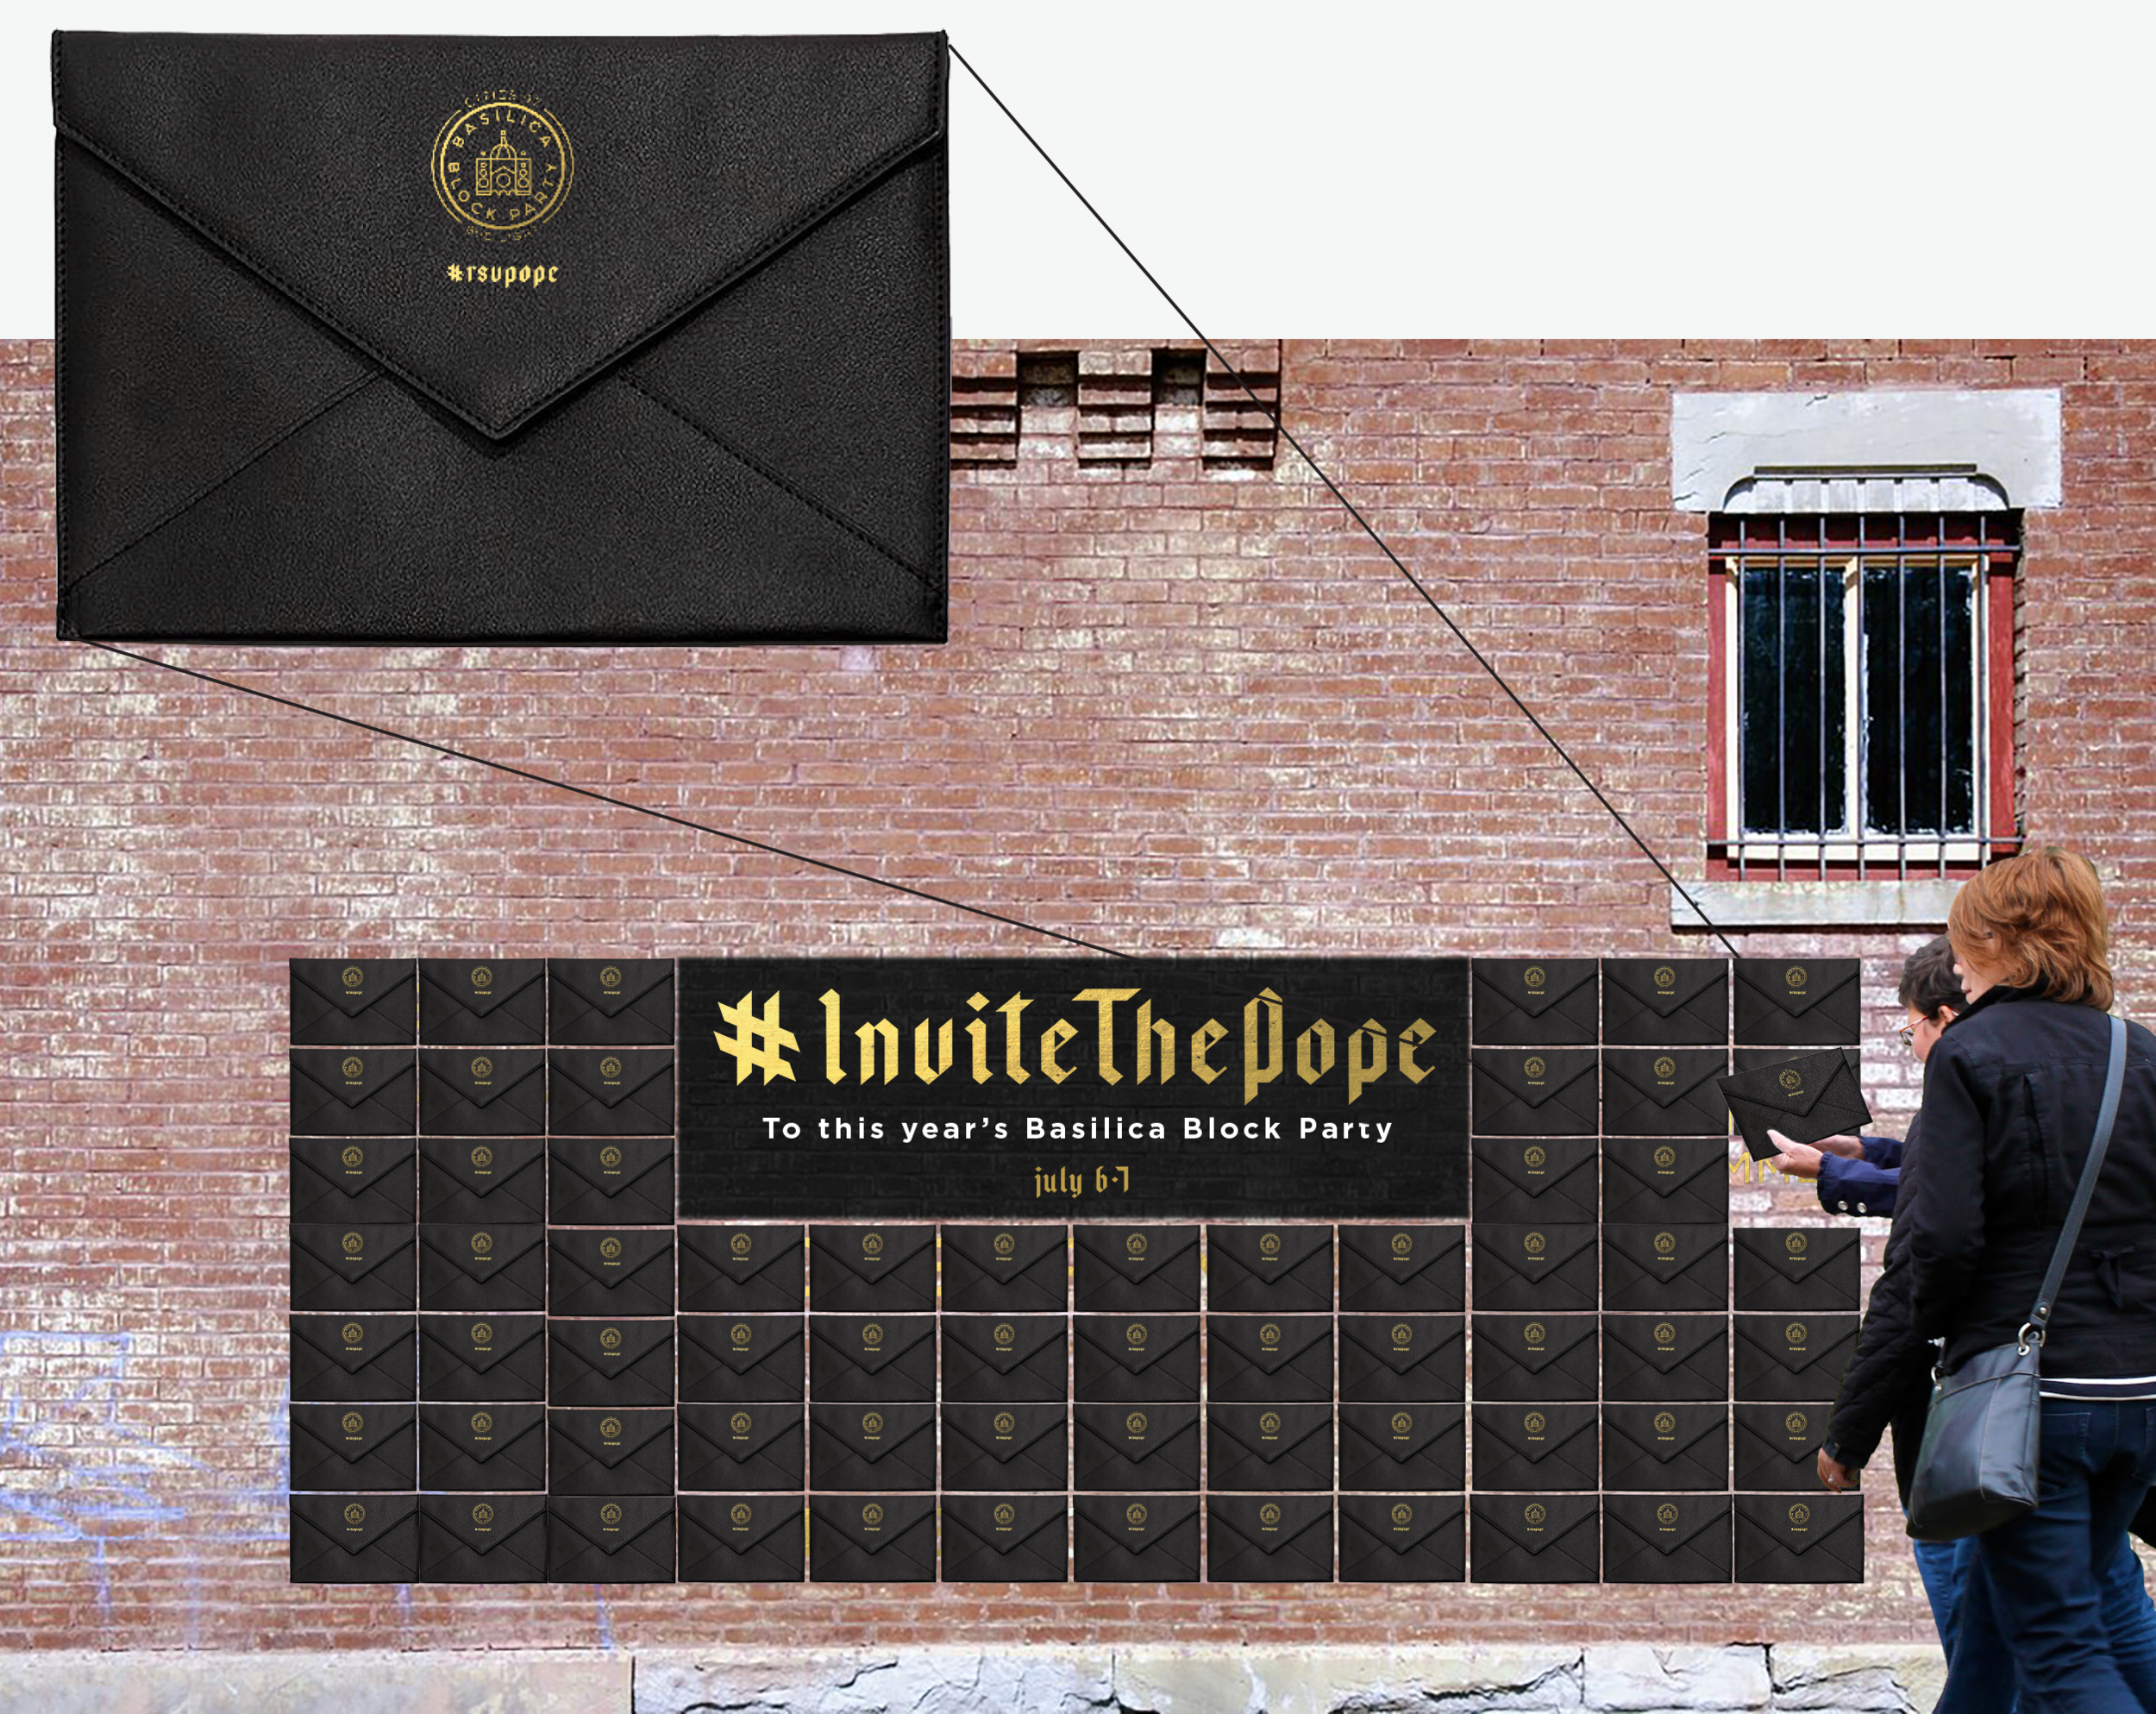 Experiential - People can also interact with a mural featuring hundreds of pre-stamped invitations, soon bound for the Vatican. As invitations are removed, the band line-up is slowly revealed.